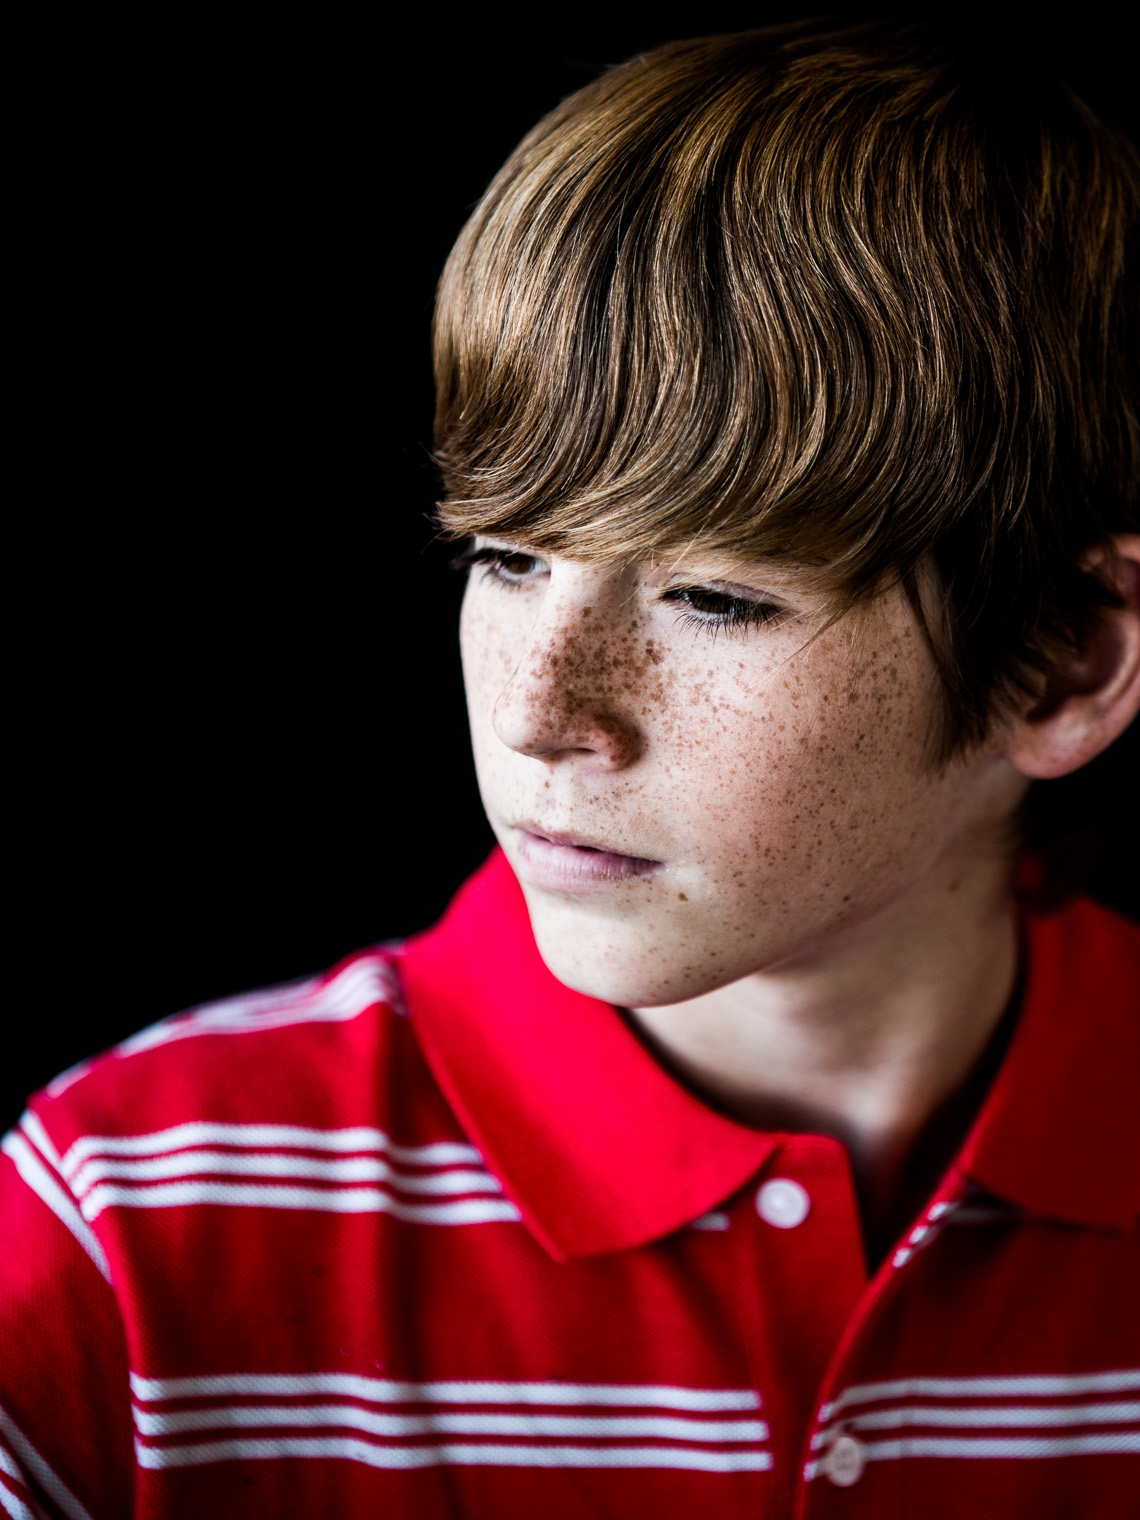 Boy with freckles.